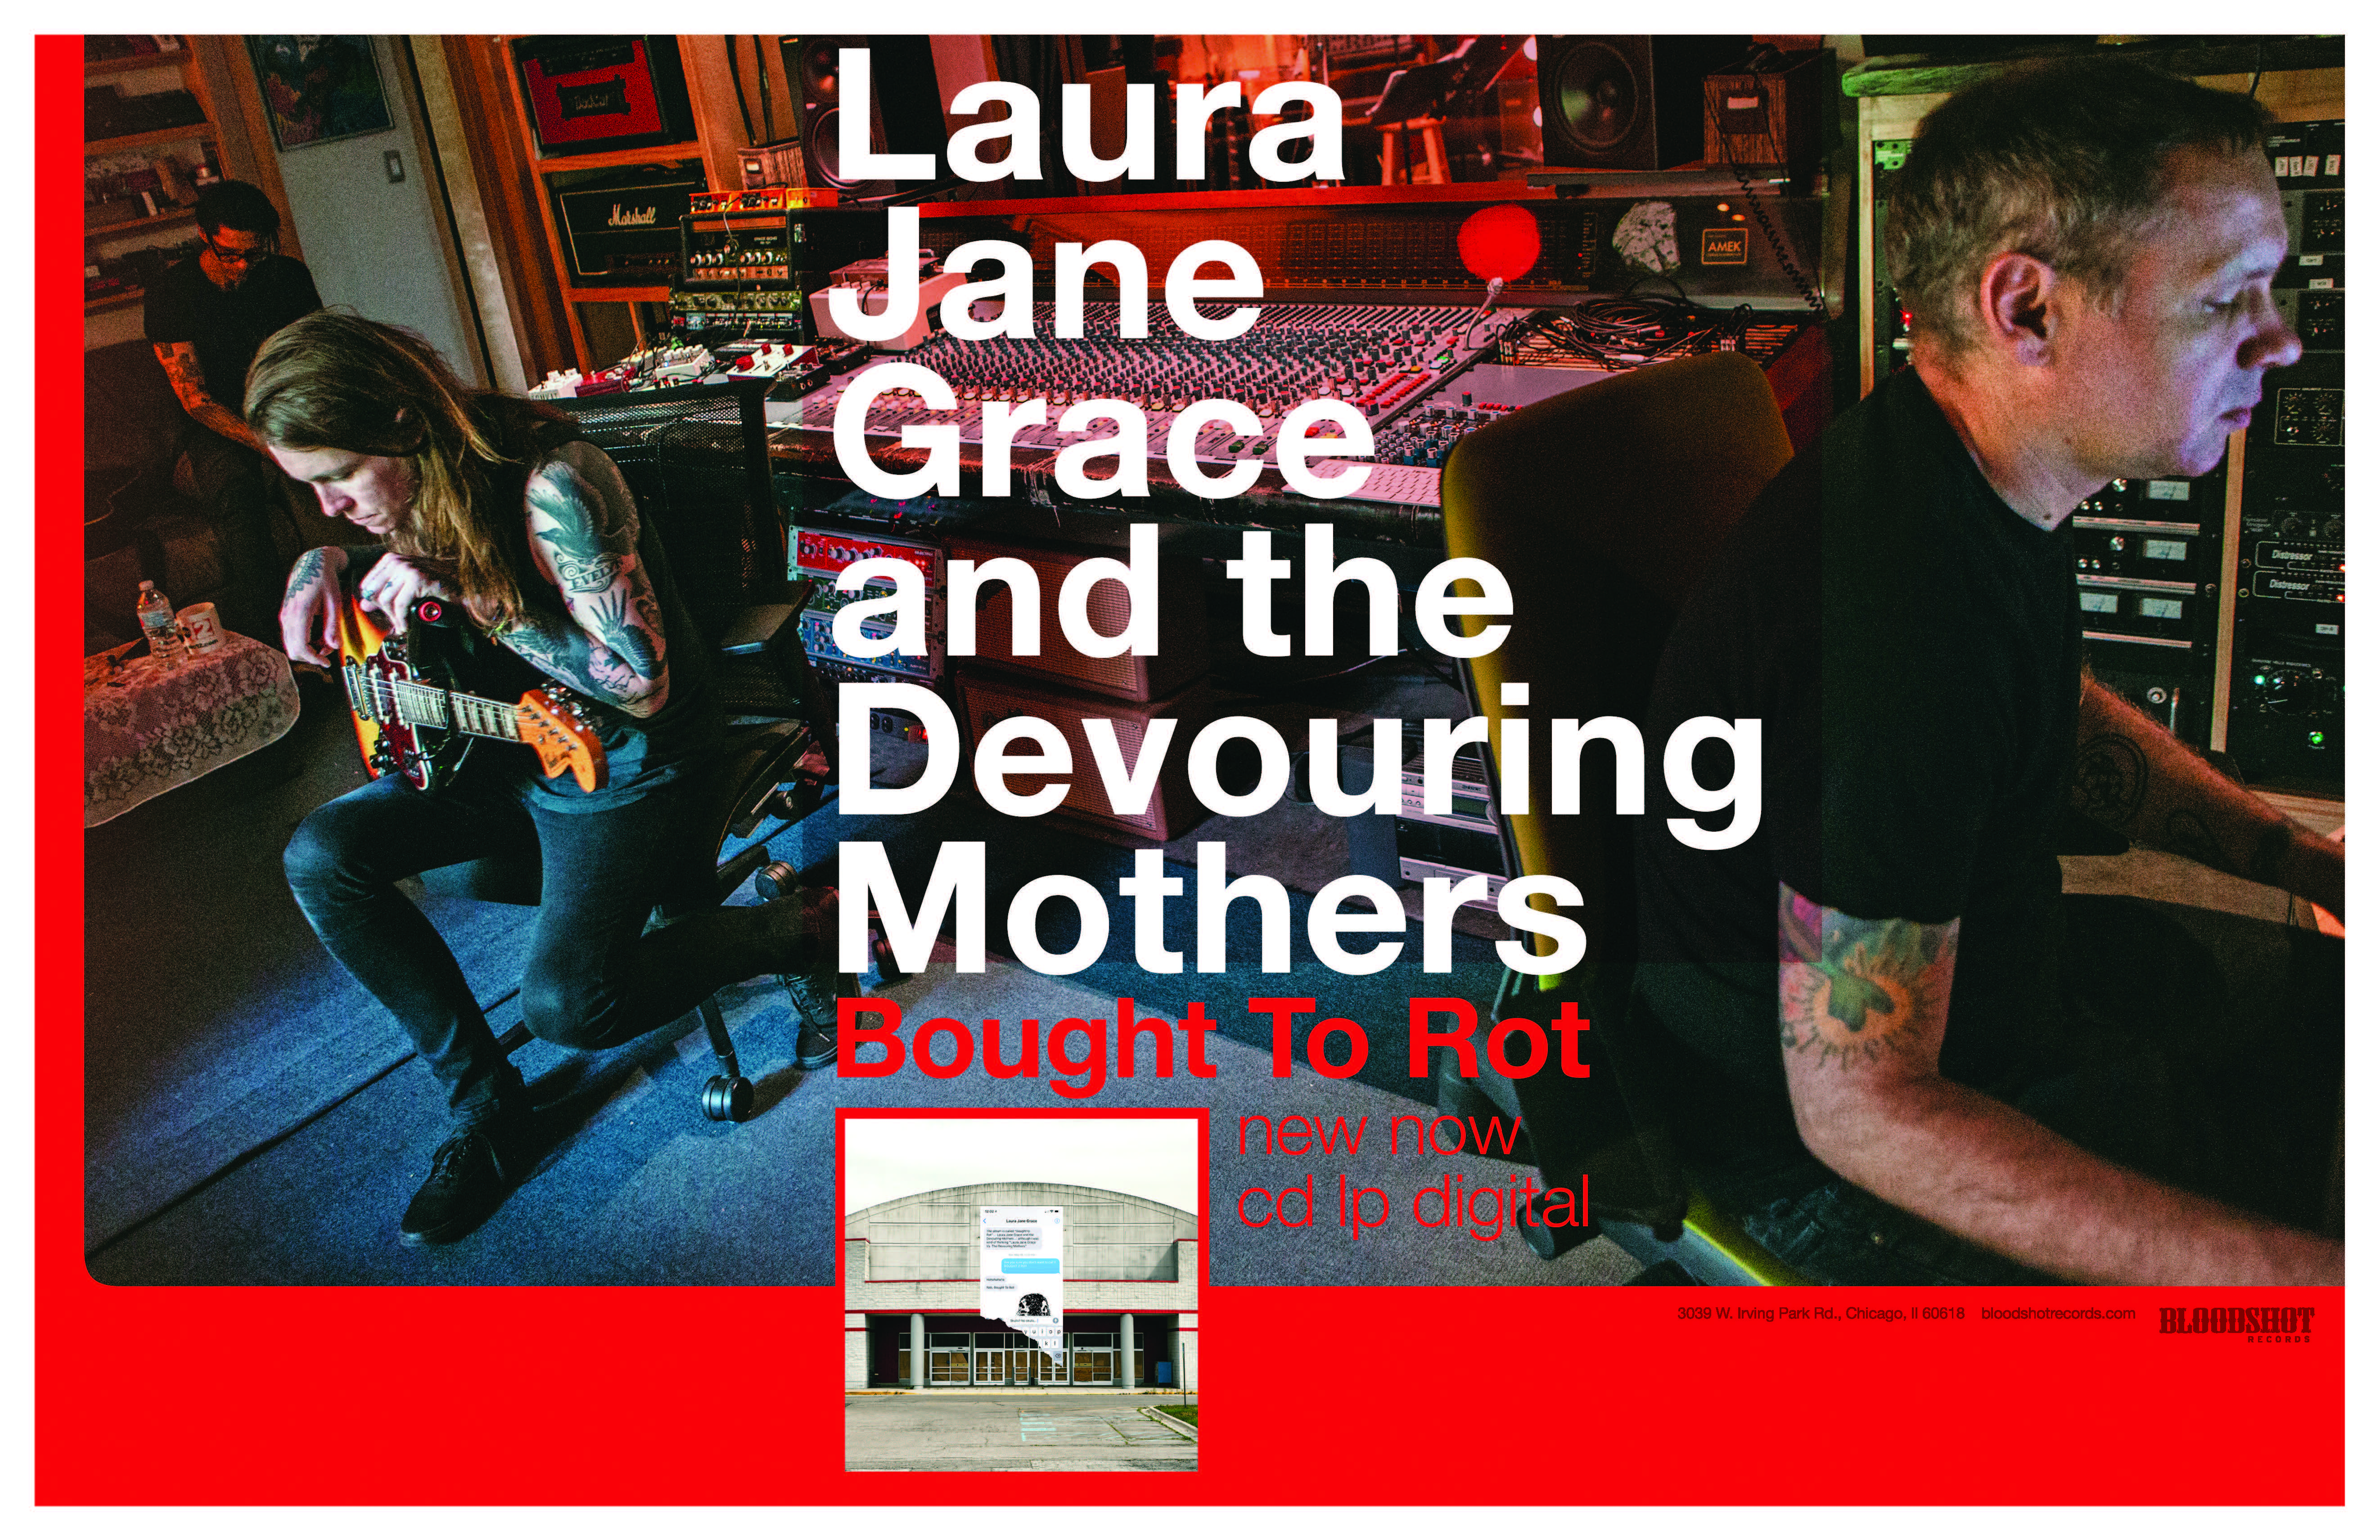 Laura jane Grace and the Devouring Mothers Bought to Rot poster